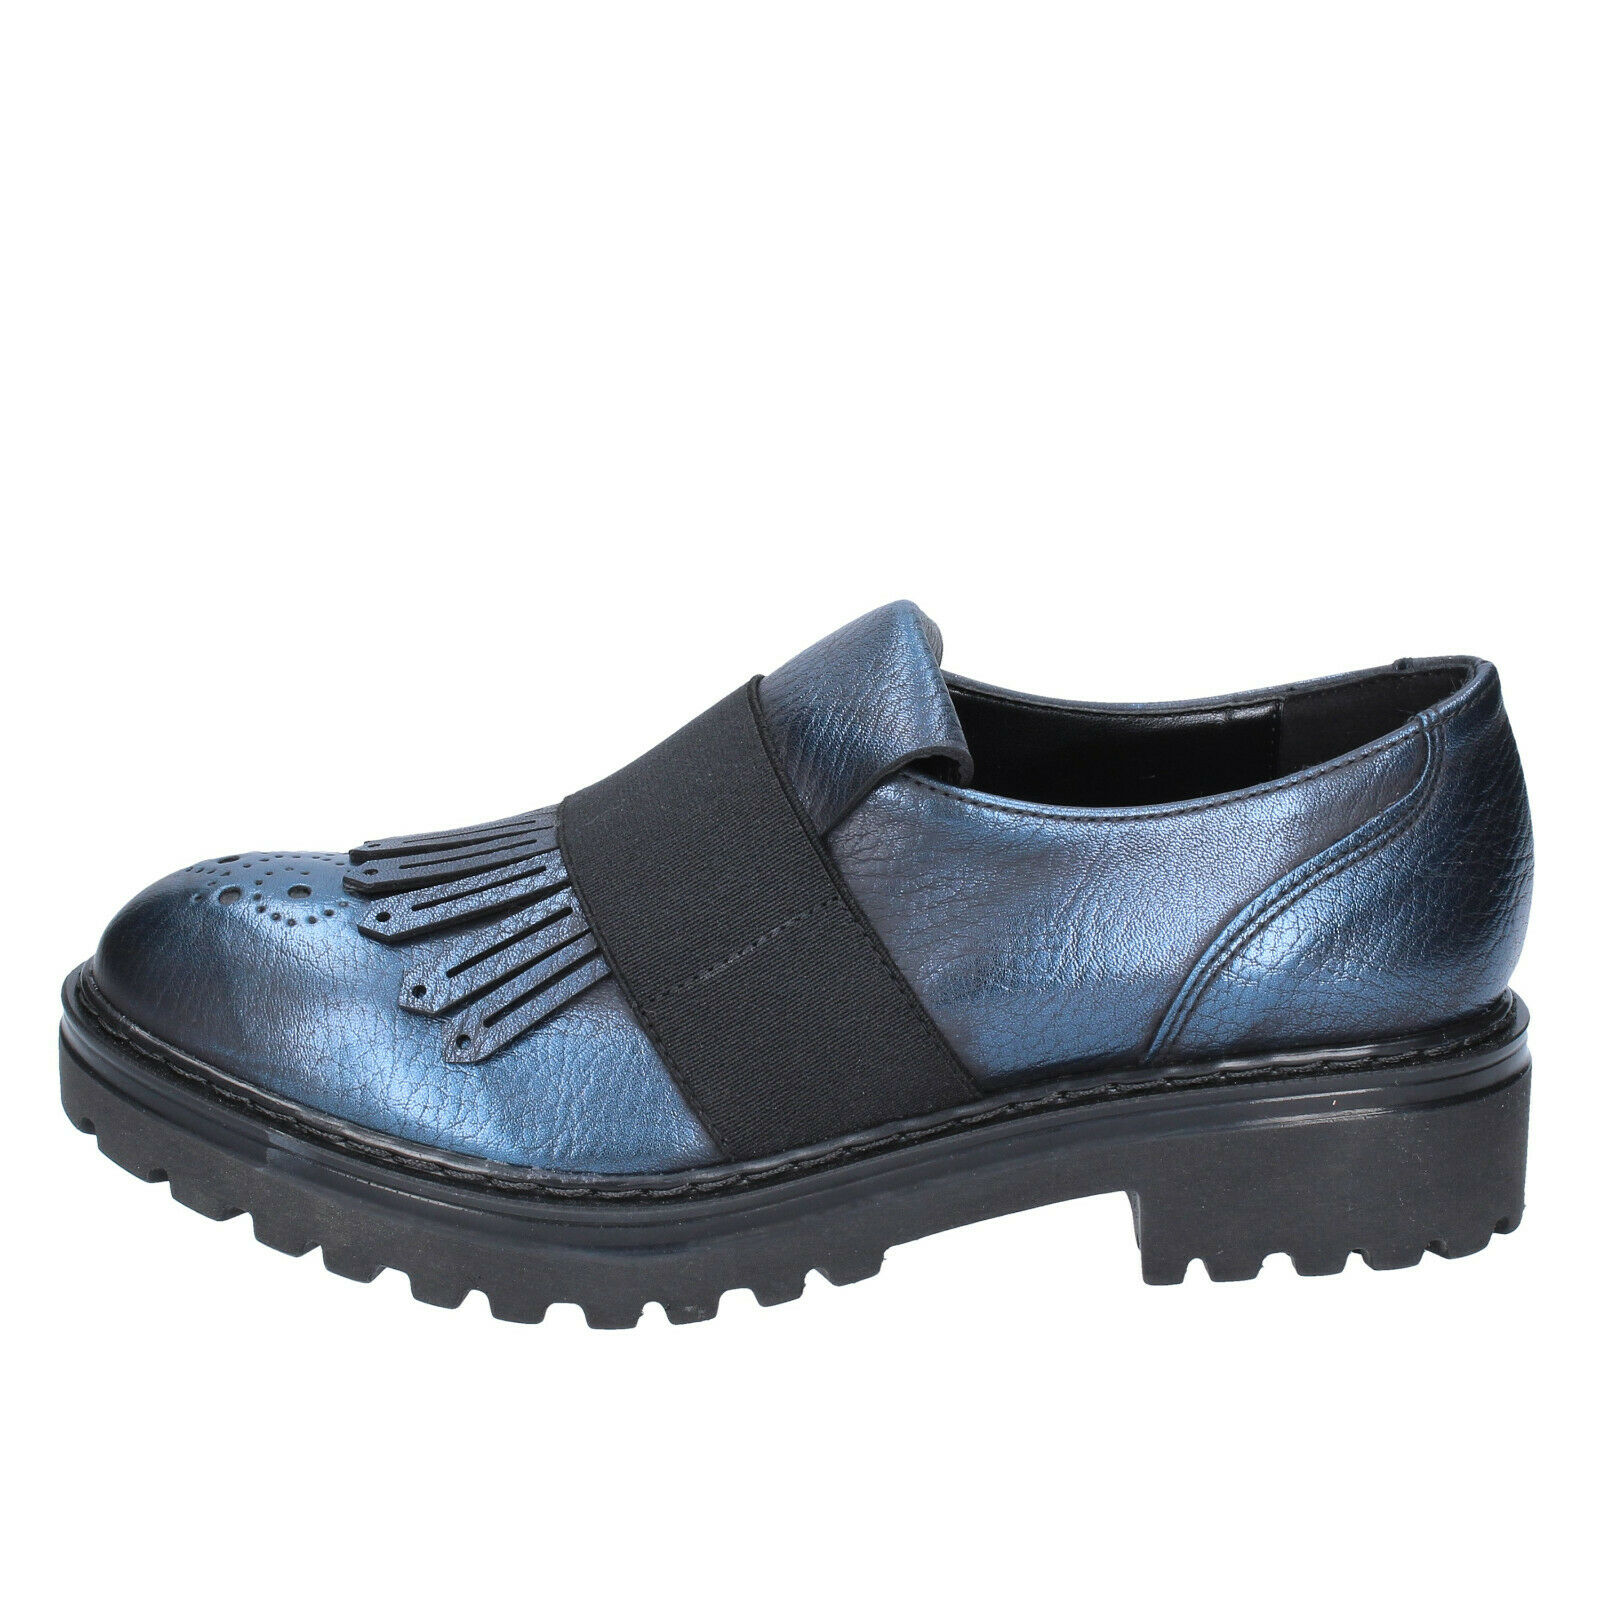 Wouomo scarpe OLGA RUBINI 7 7 7 (EU 37) slip on blu leather BS861-37 2cbfc5